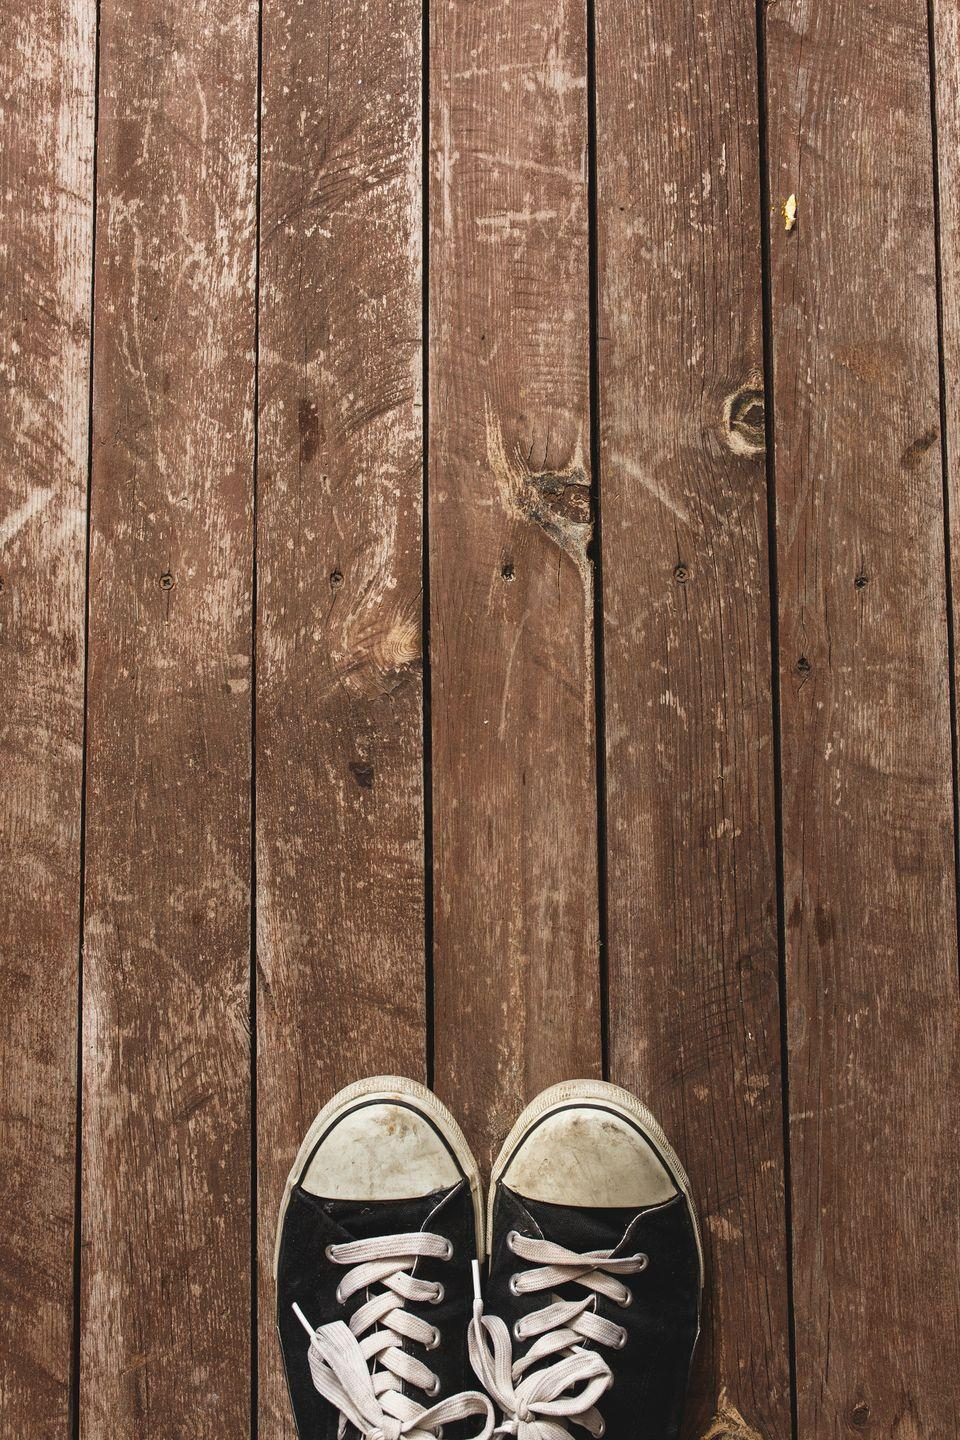 "<p>Like it or not, your shoes are already tracking <a href=""https://www.countryliving.com/home-maintenance/cleaning/a36914/dont-wear-shoes-in-house/"" rel=""nofollow noopener"" target=""_blank"" data-ylk=""slk:bacteria all of over your house"" class=""link rapid-noclick-resp"">bacteria all of over your house</a>. Don't let the stench travel too. If the odor reaches your nose, buy some new sneaks.</p>"